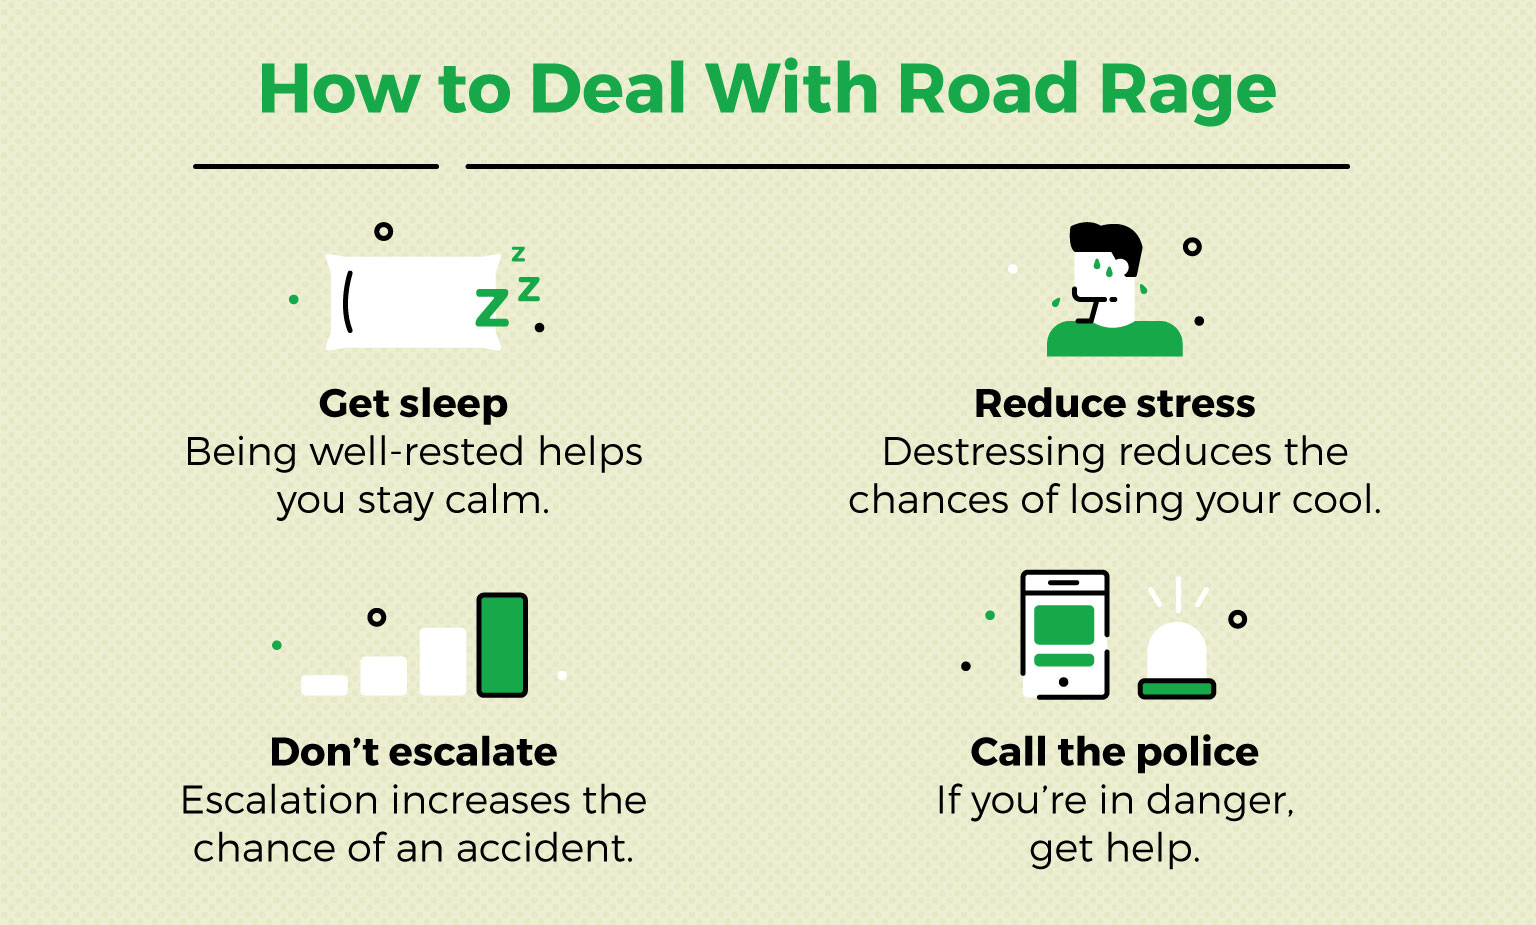 4 tips to deal with road rage internally